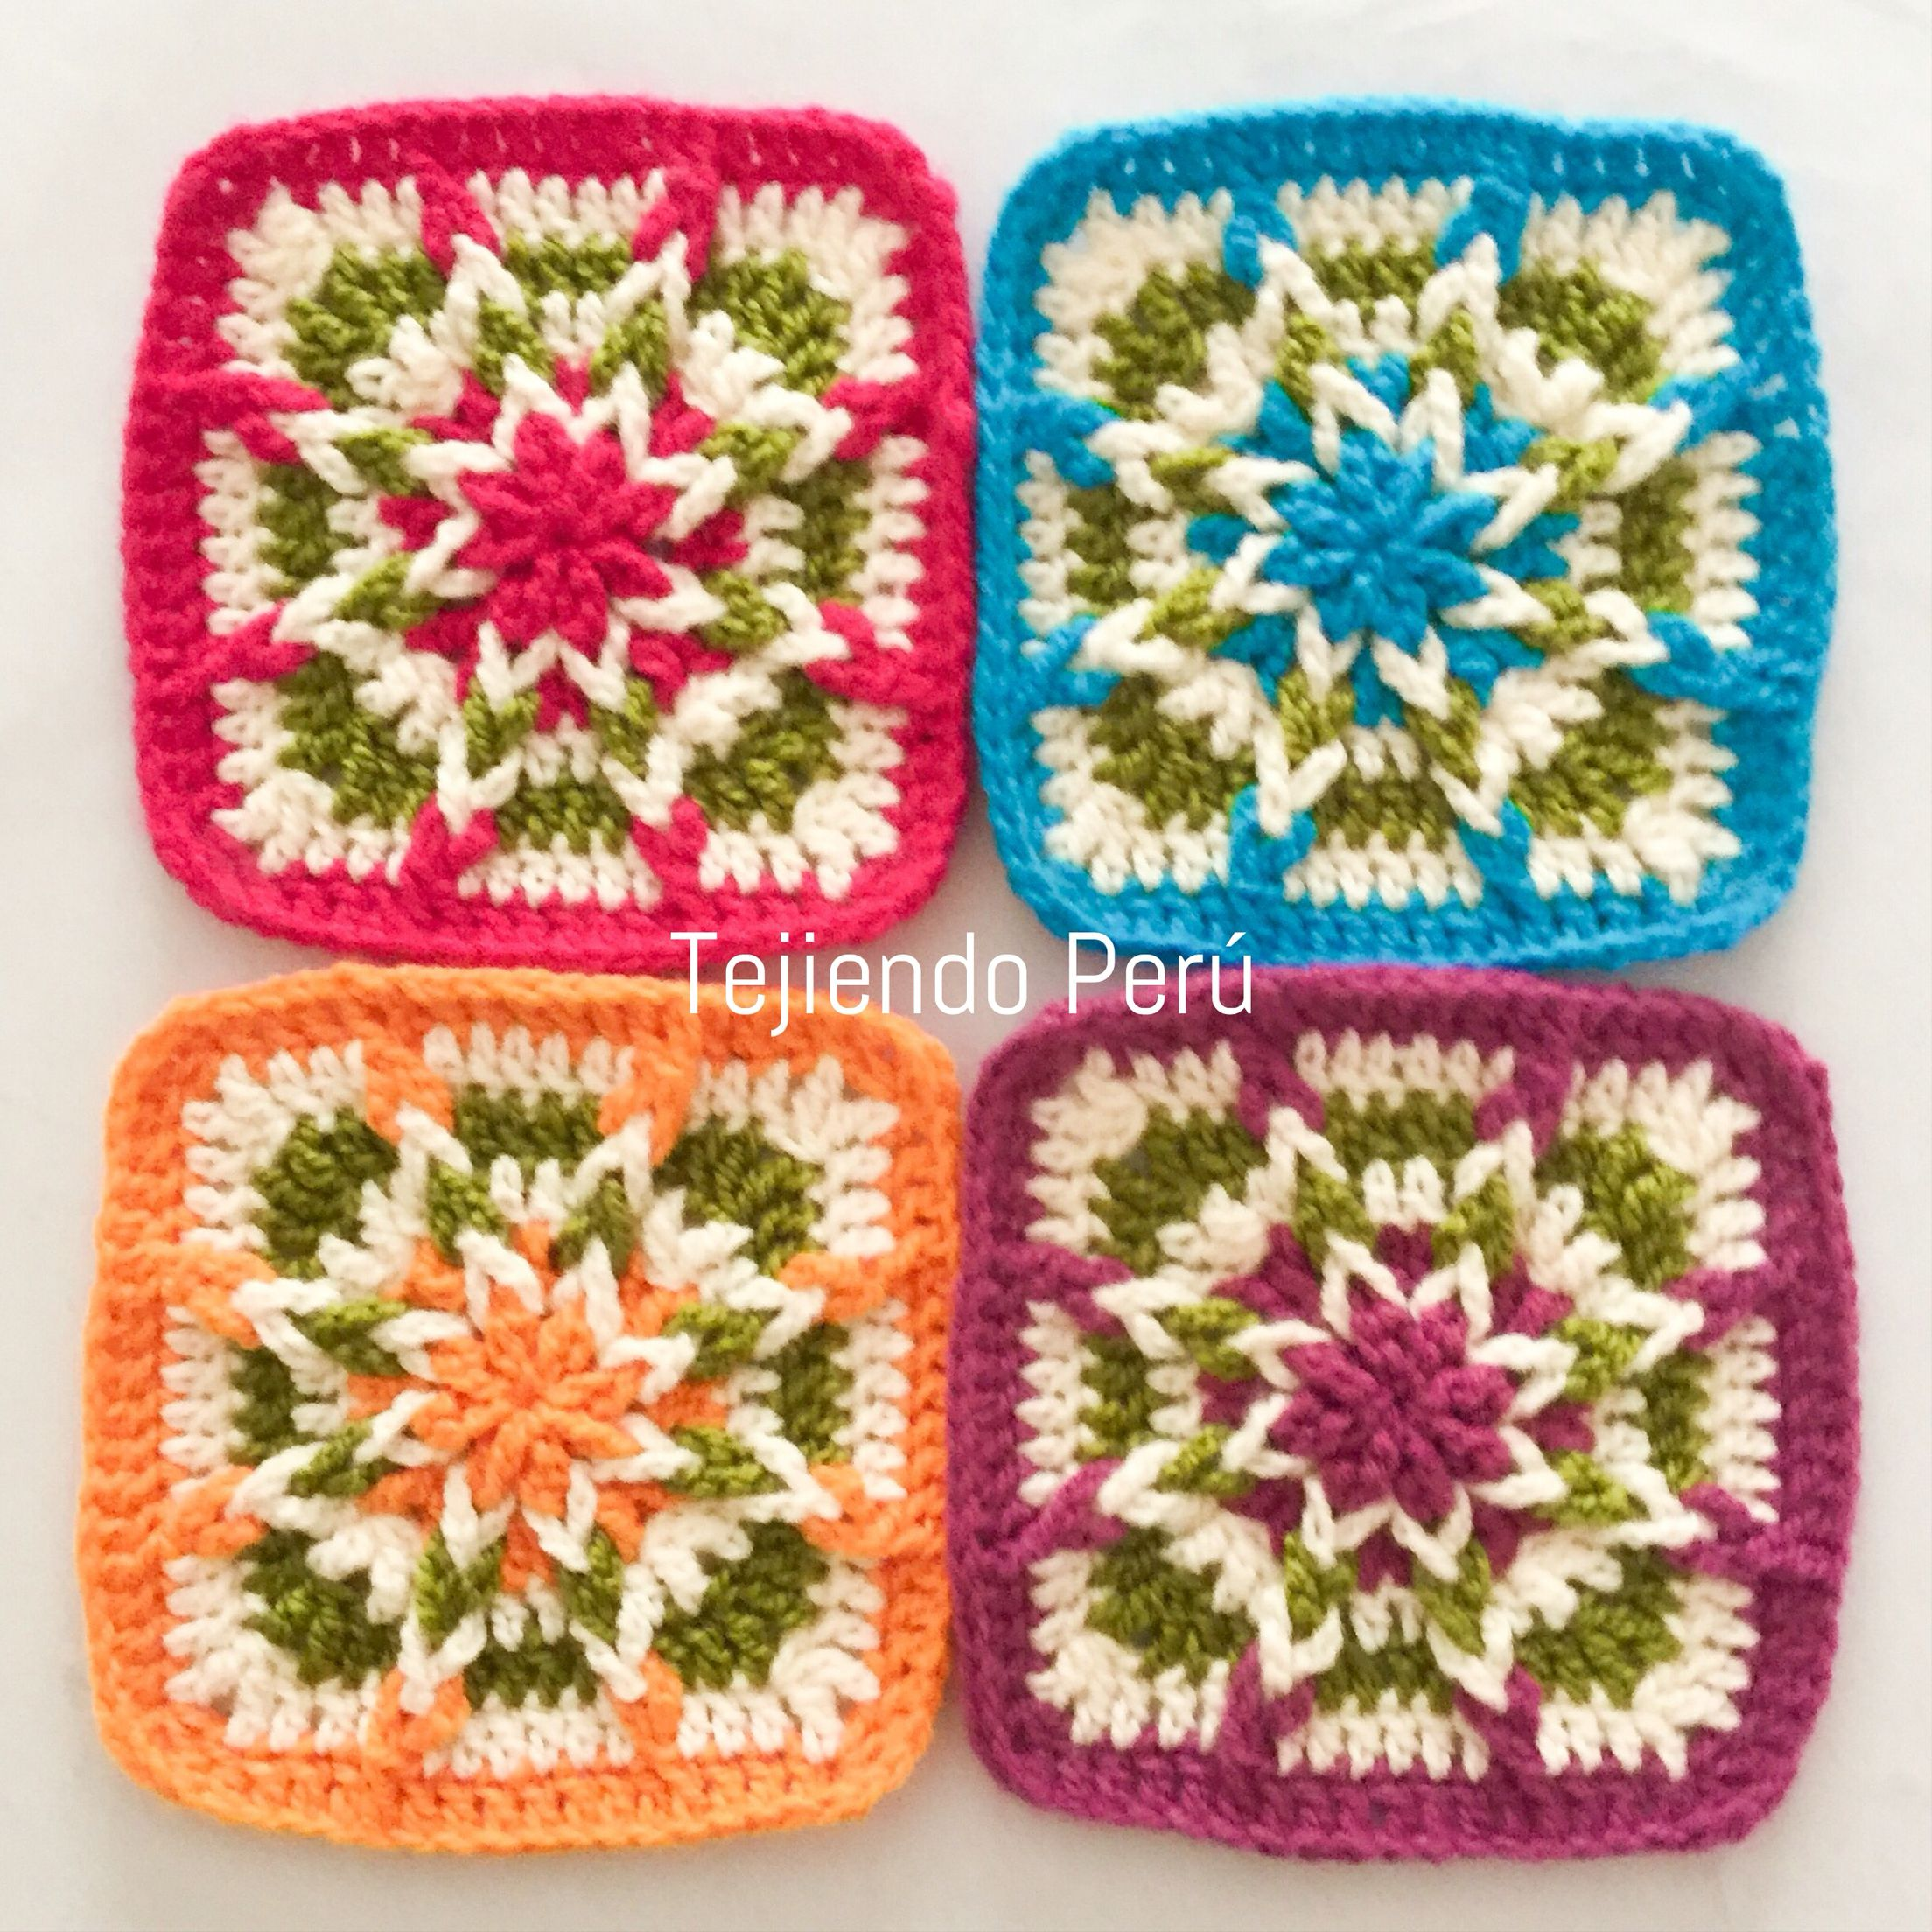 crochet granny squares invertidos tejidos a crochet v deo tutorial del paso a paso incluye. Black Bedroom Furniture Sets. Home Design Ideas